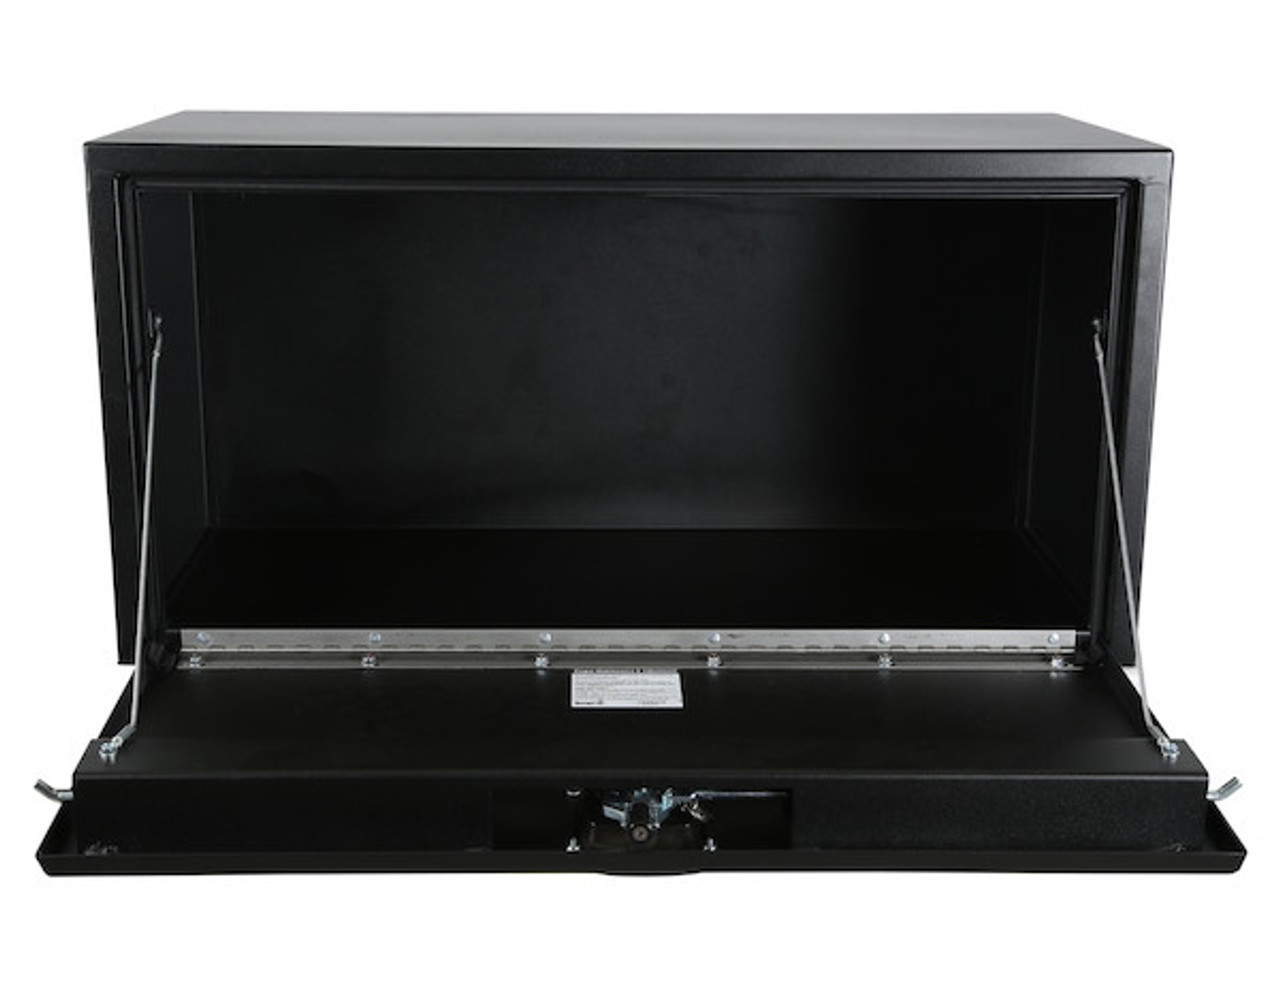 """1732505 BUYERS PRODUCTS TEXTURED MATTE BLACK STEEL UNDERBODY TRUCK TOOLBOX WITH 3-POINT LATCH 18""""Hx18""""Dx36""""W  Picture # 5"""